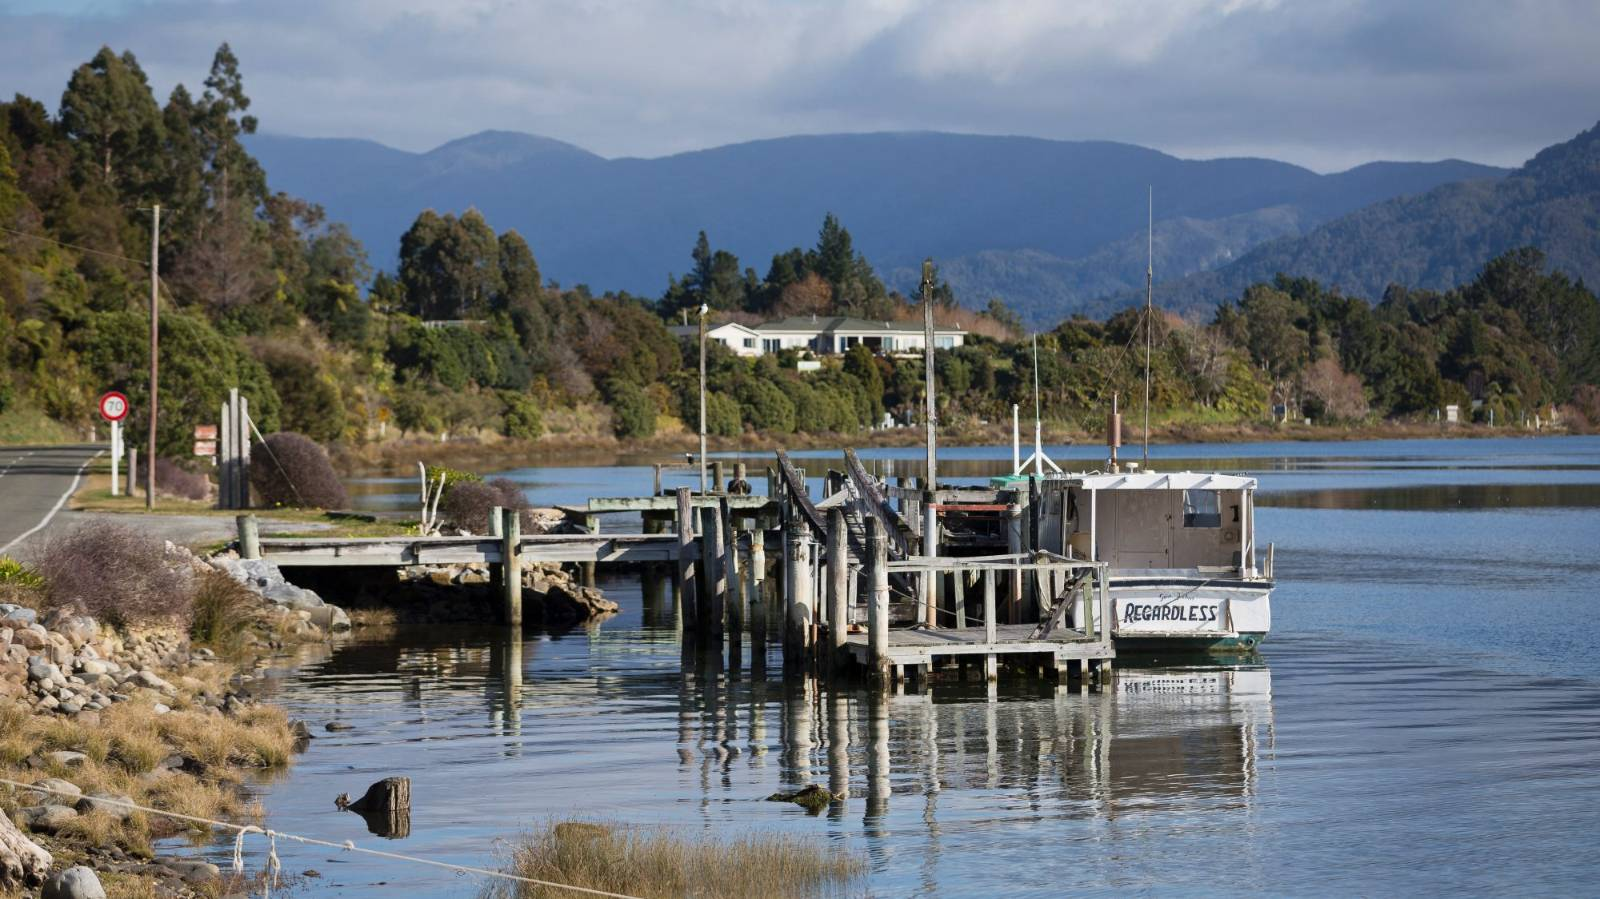 Collingwood: A Golden Bay town with an old-time charm